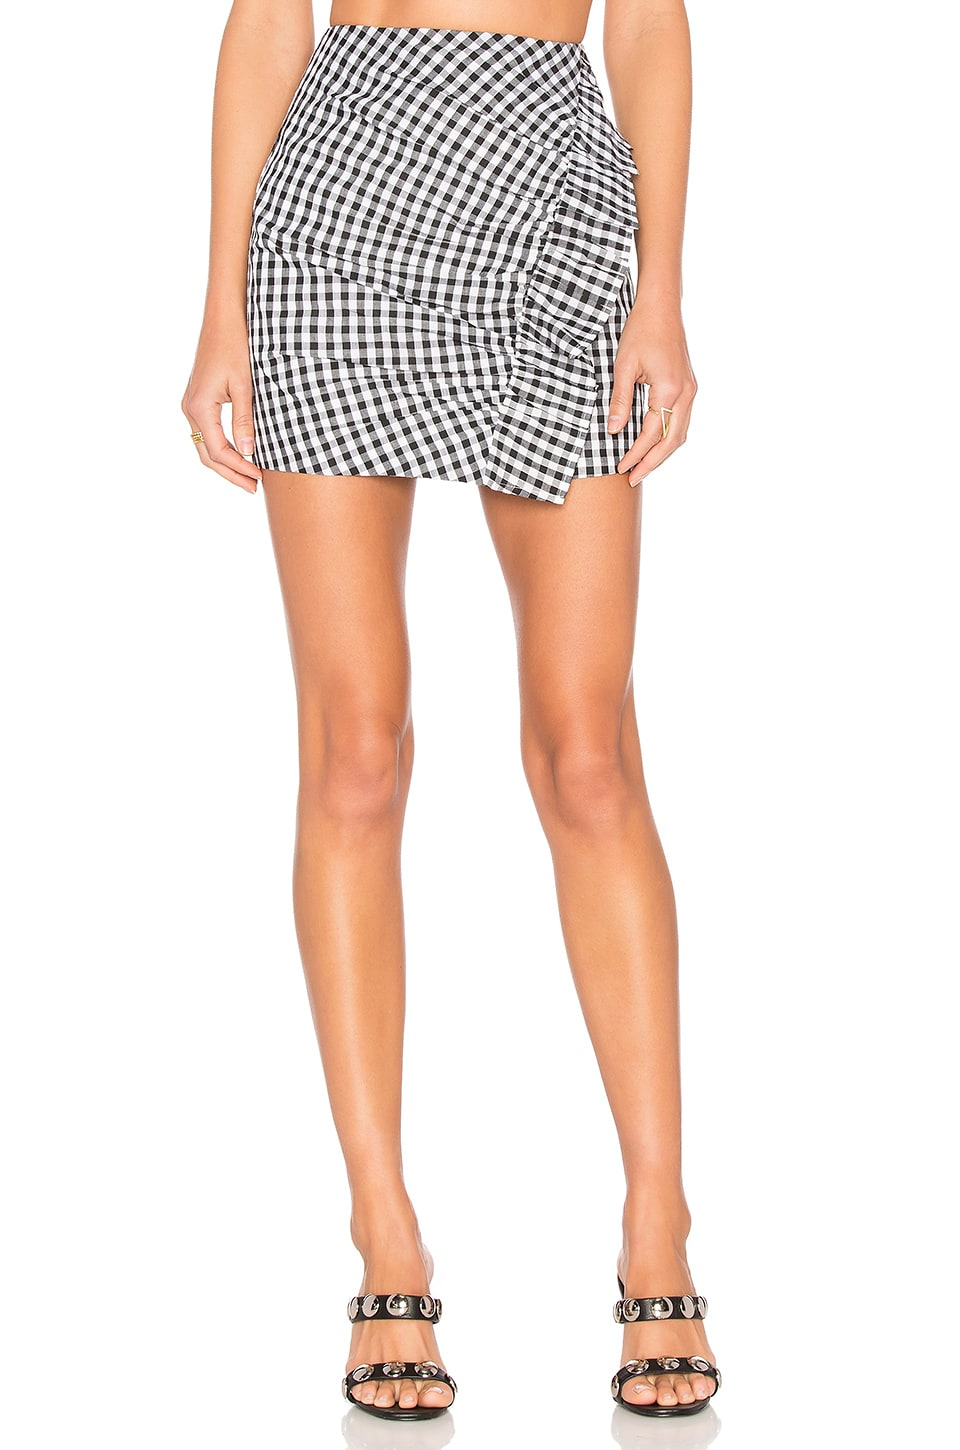 Lovers + Friends x REVOLVE Lisa Skirt in Gingham